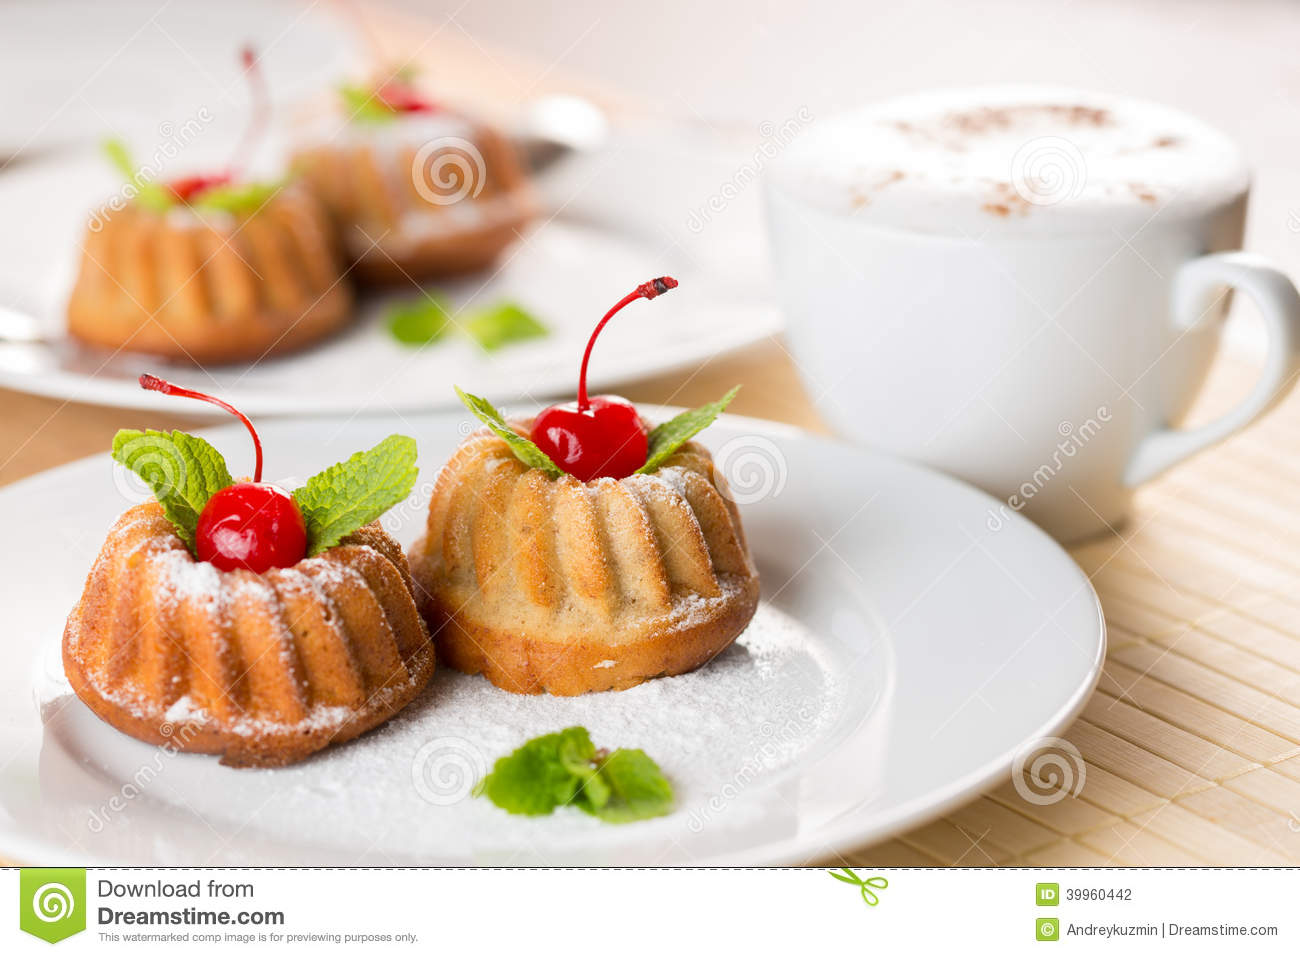 Fancy Cakes Dessert With Cappuccino Coffee Stock Photo